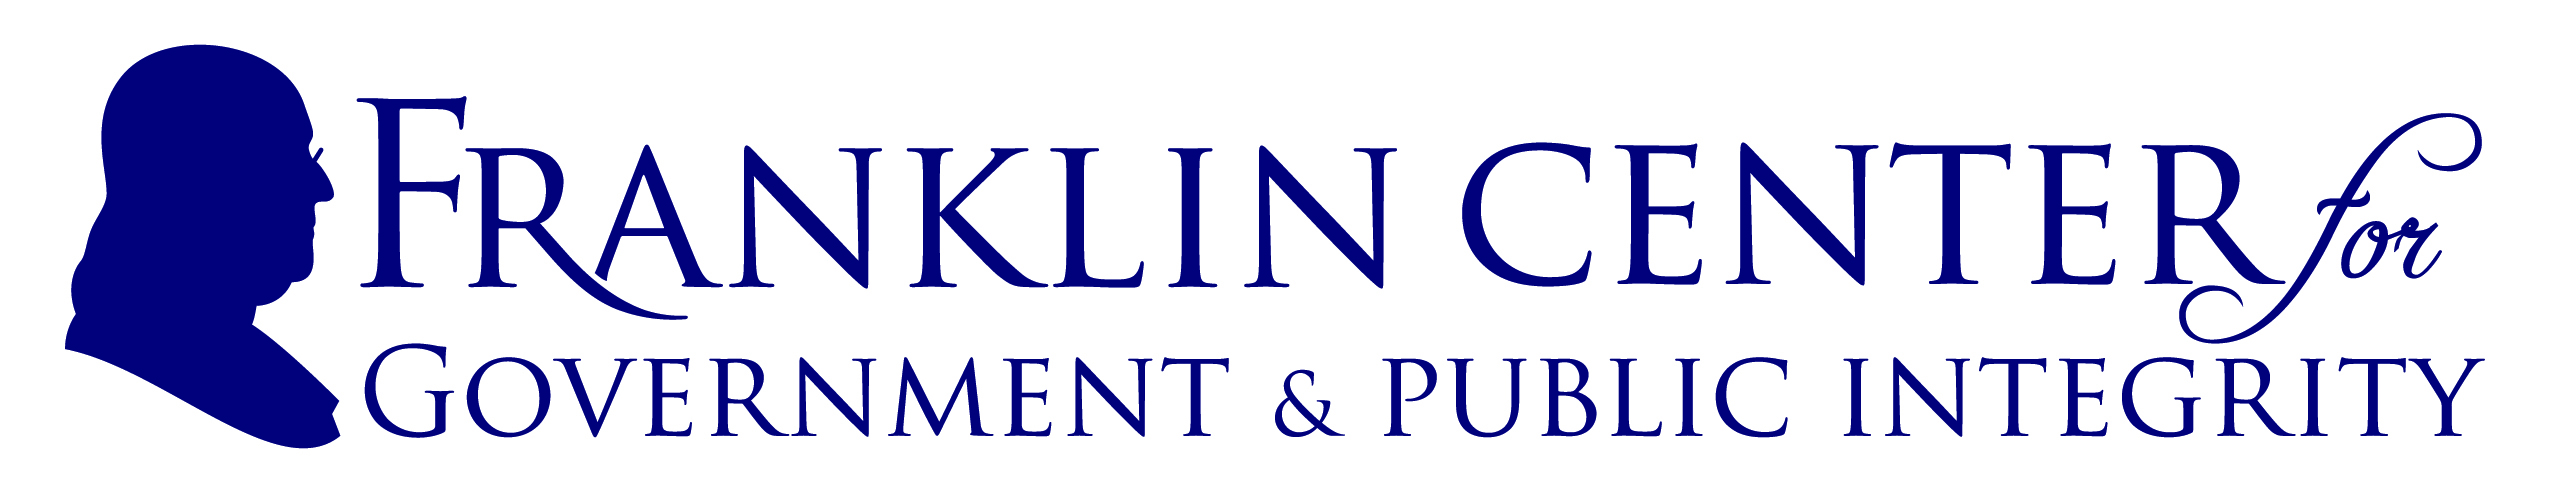 franklin center logo